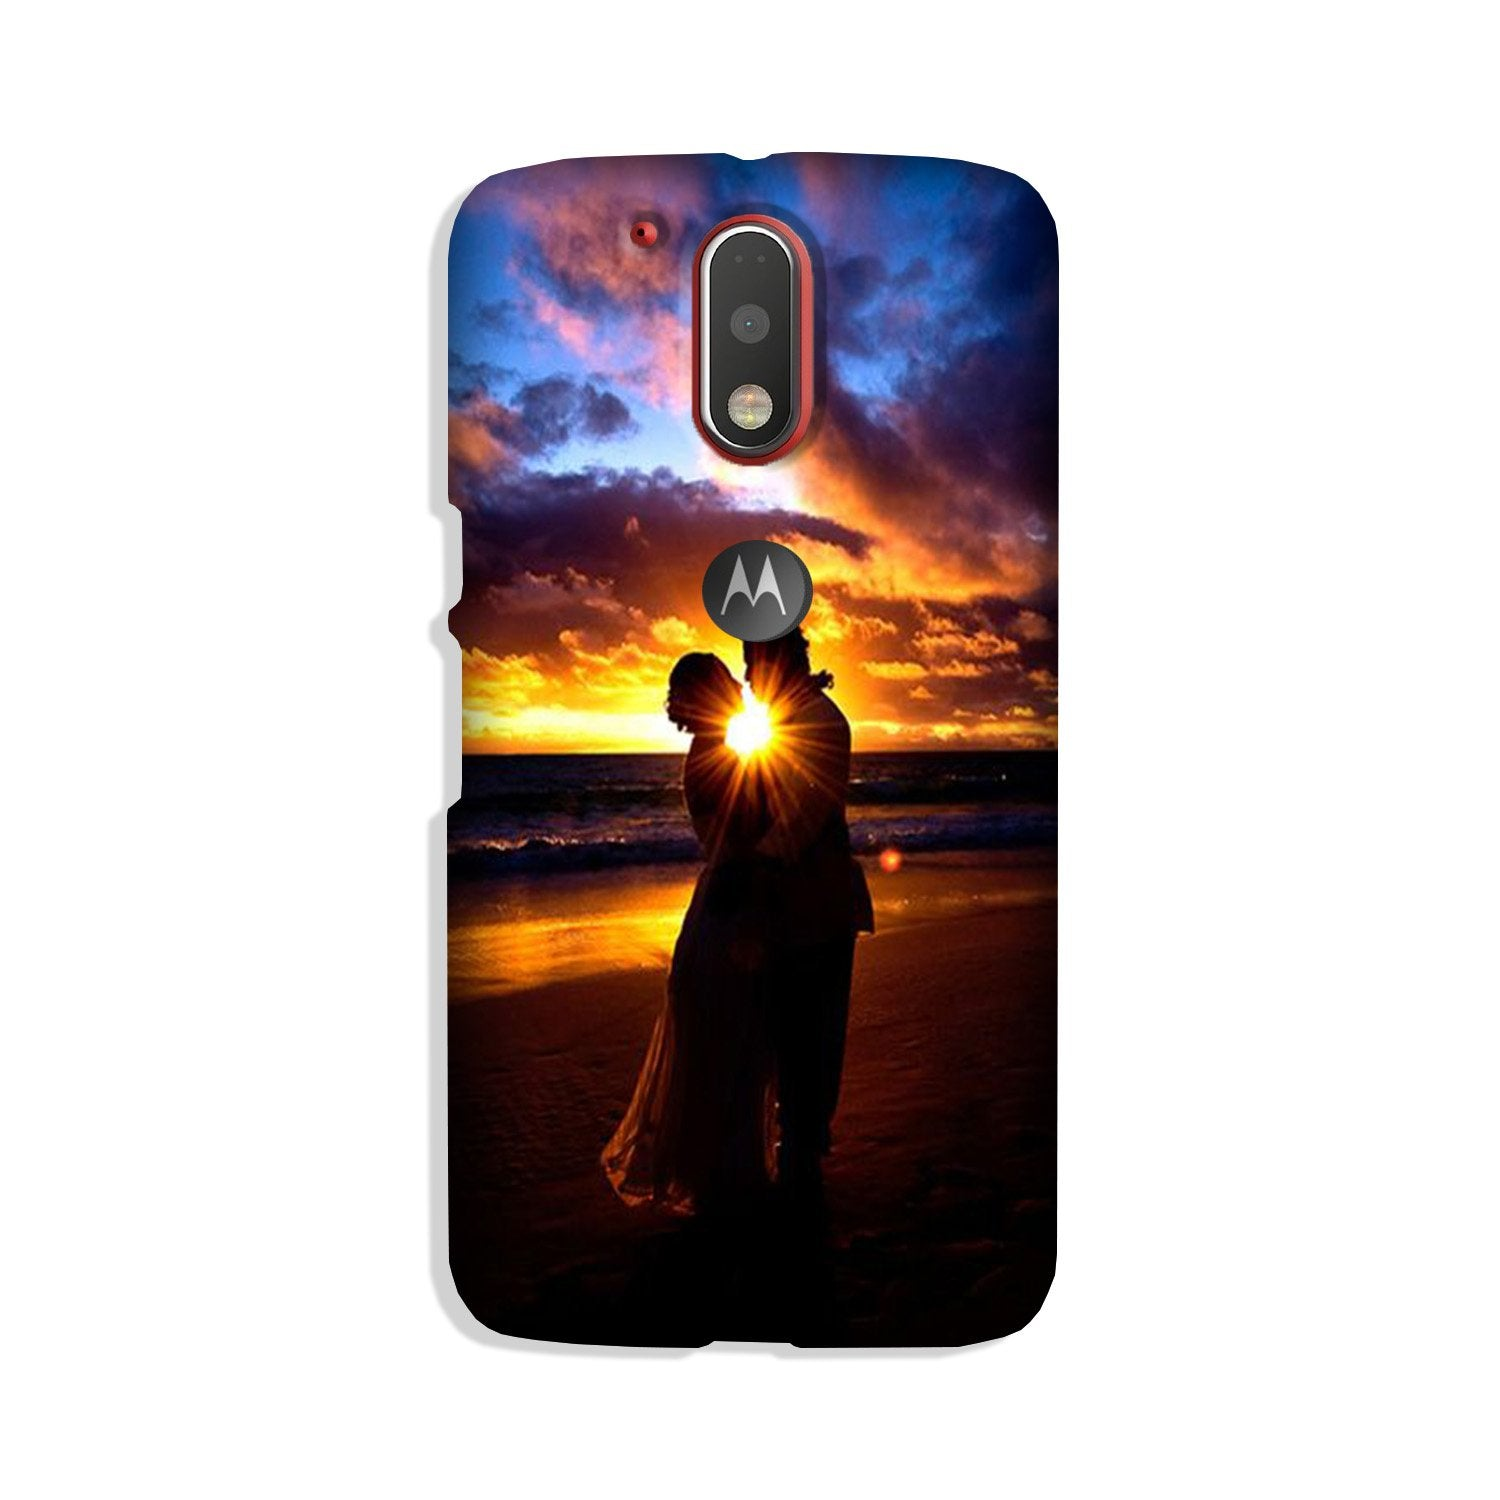 Couple Sea shore Case for Moto G4 Plus